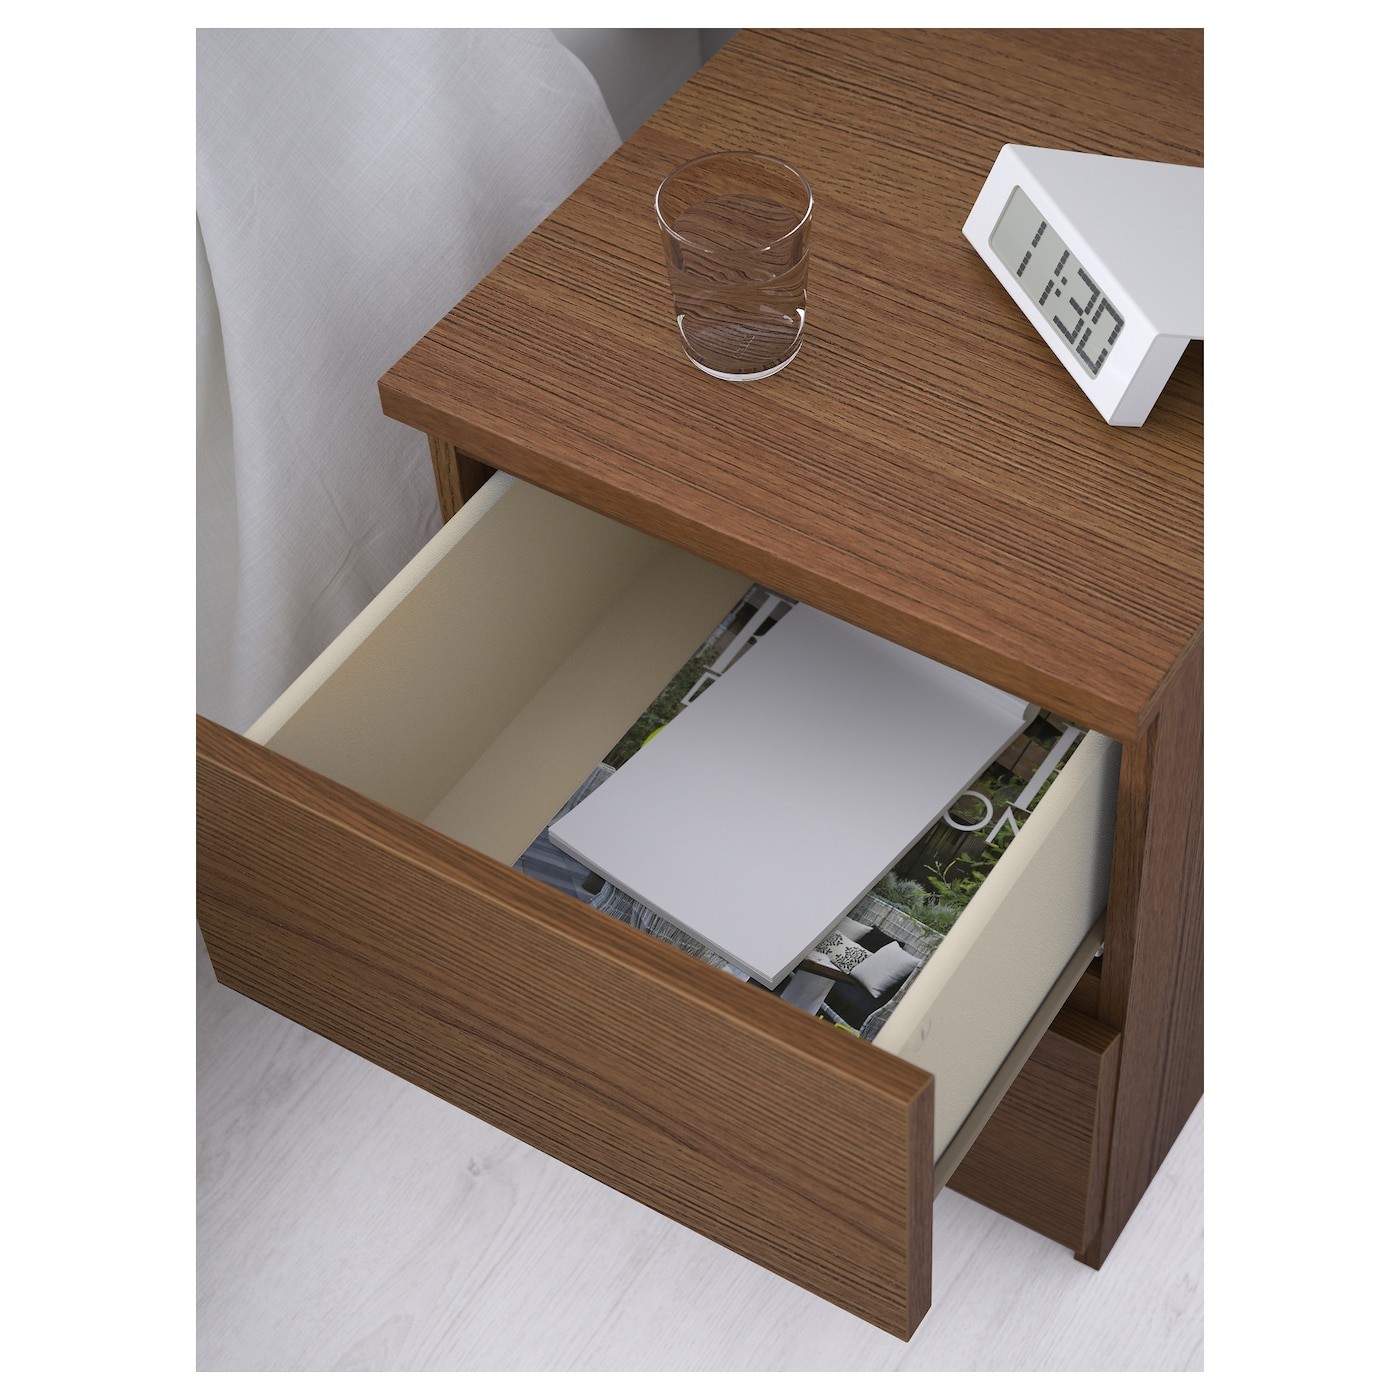 malm chest of 2 drawers brown stained ash veneer 40x55 cm ikea